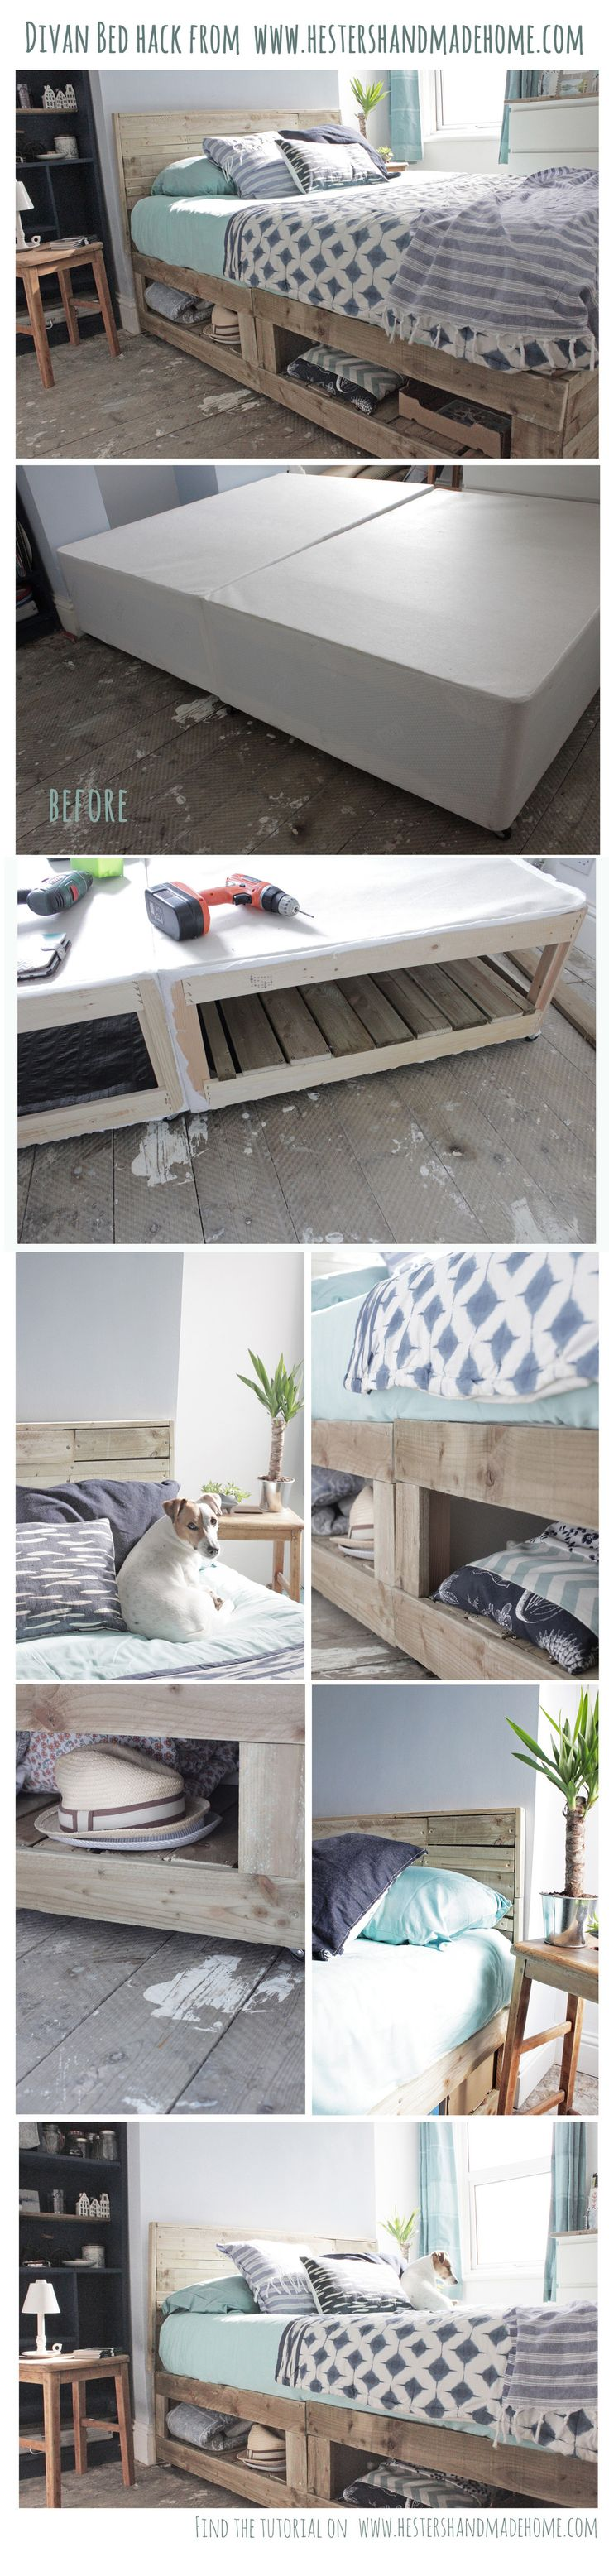 Turn a divan bed into a rustic luxe bed with lots of storage, tutorial by Hester's Handmade Home